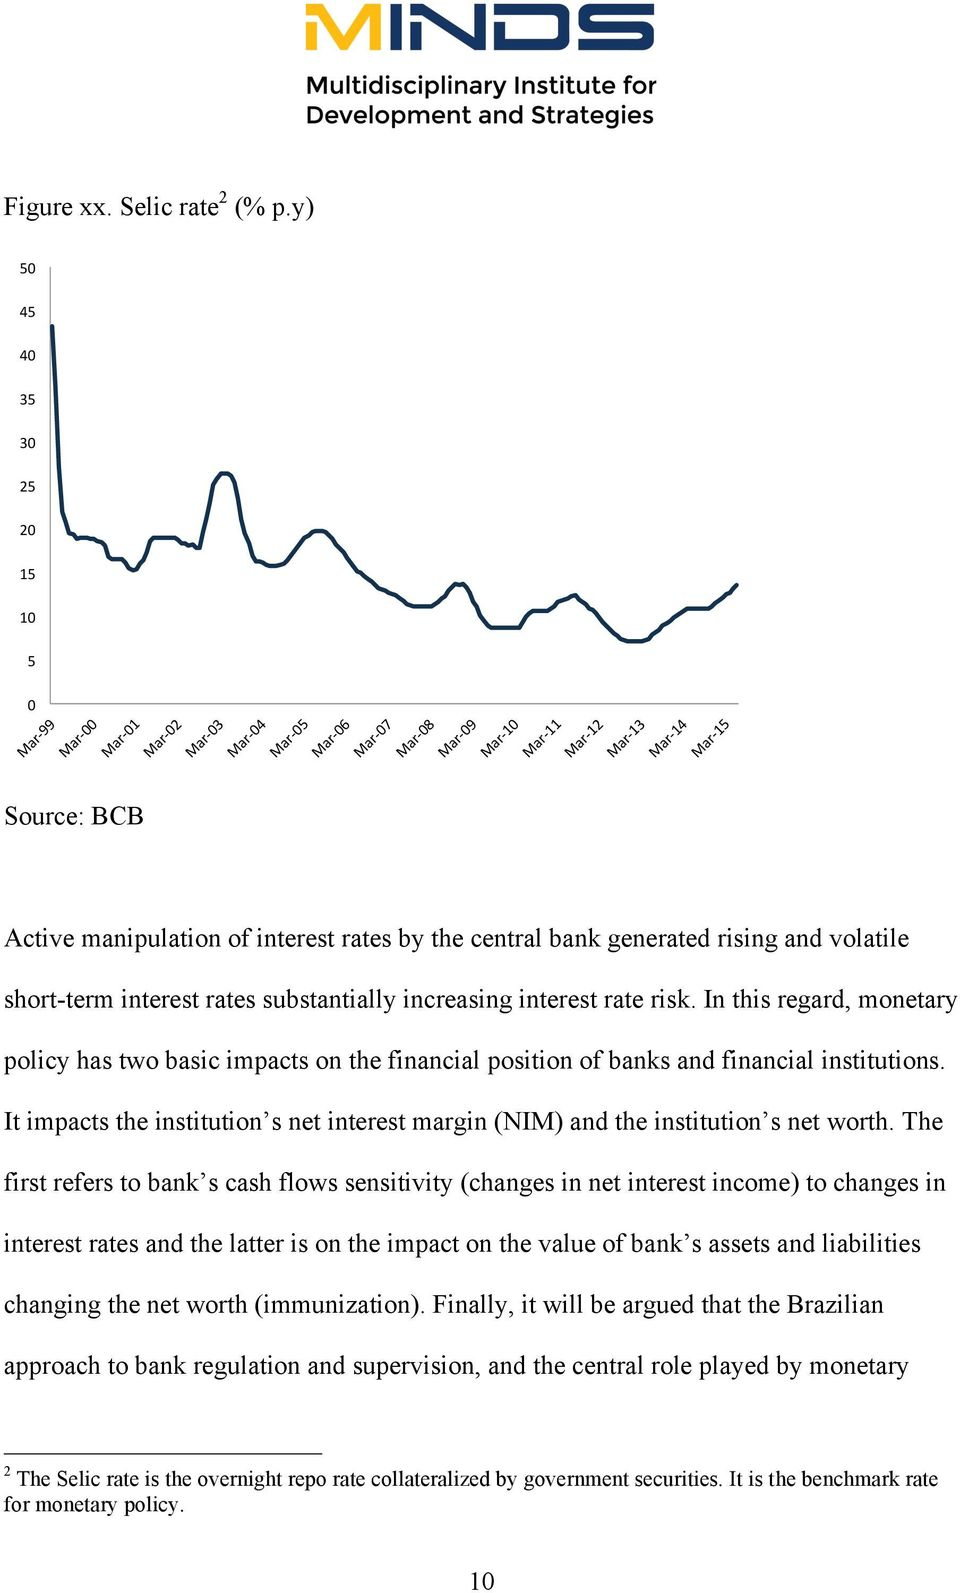 "ar +1 3"" M ar +1 4"" M ar +1 5"" 0"" Source: BCB Active manipulation of interest rates by the central bank generated rising and volatile short-term interest rates substantially increasing interest rate"